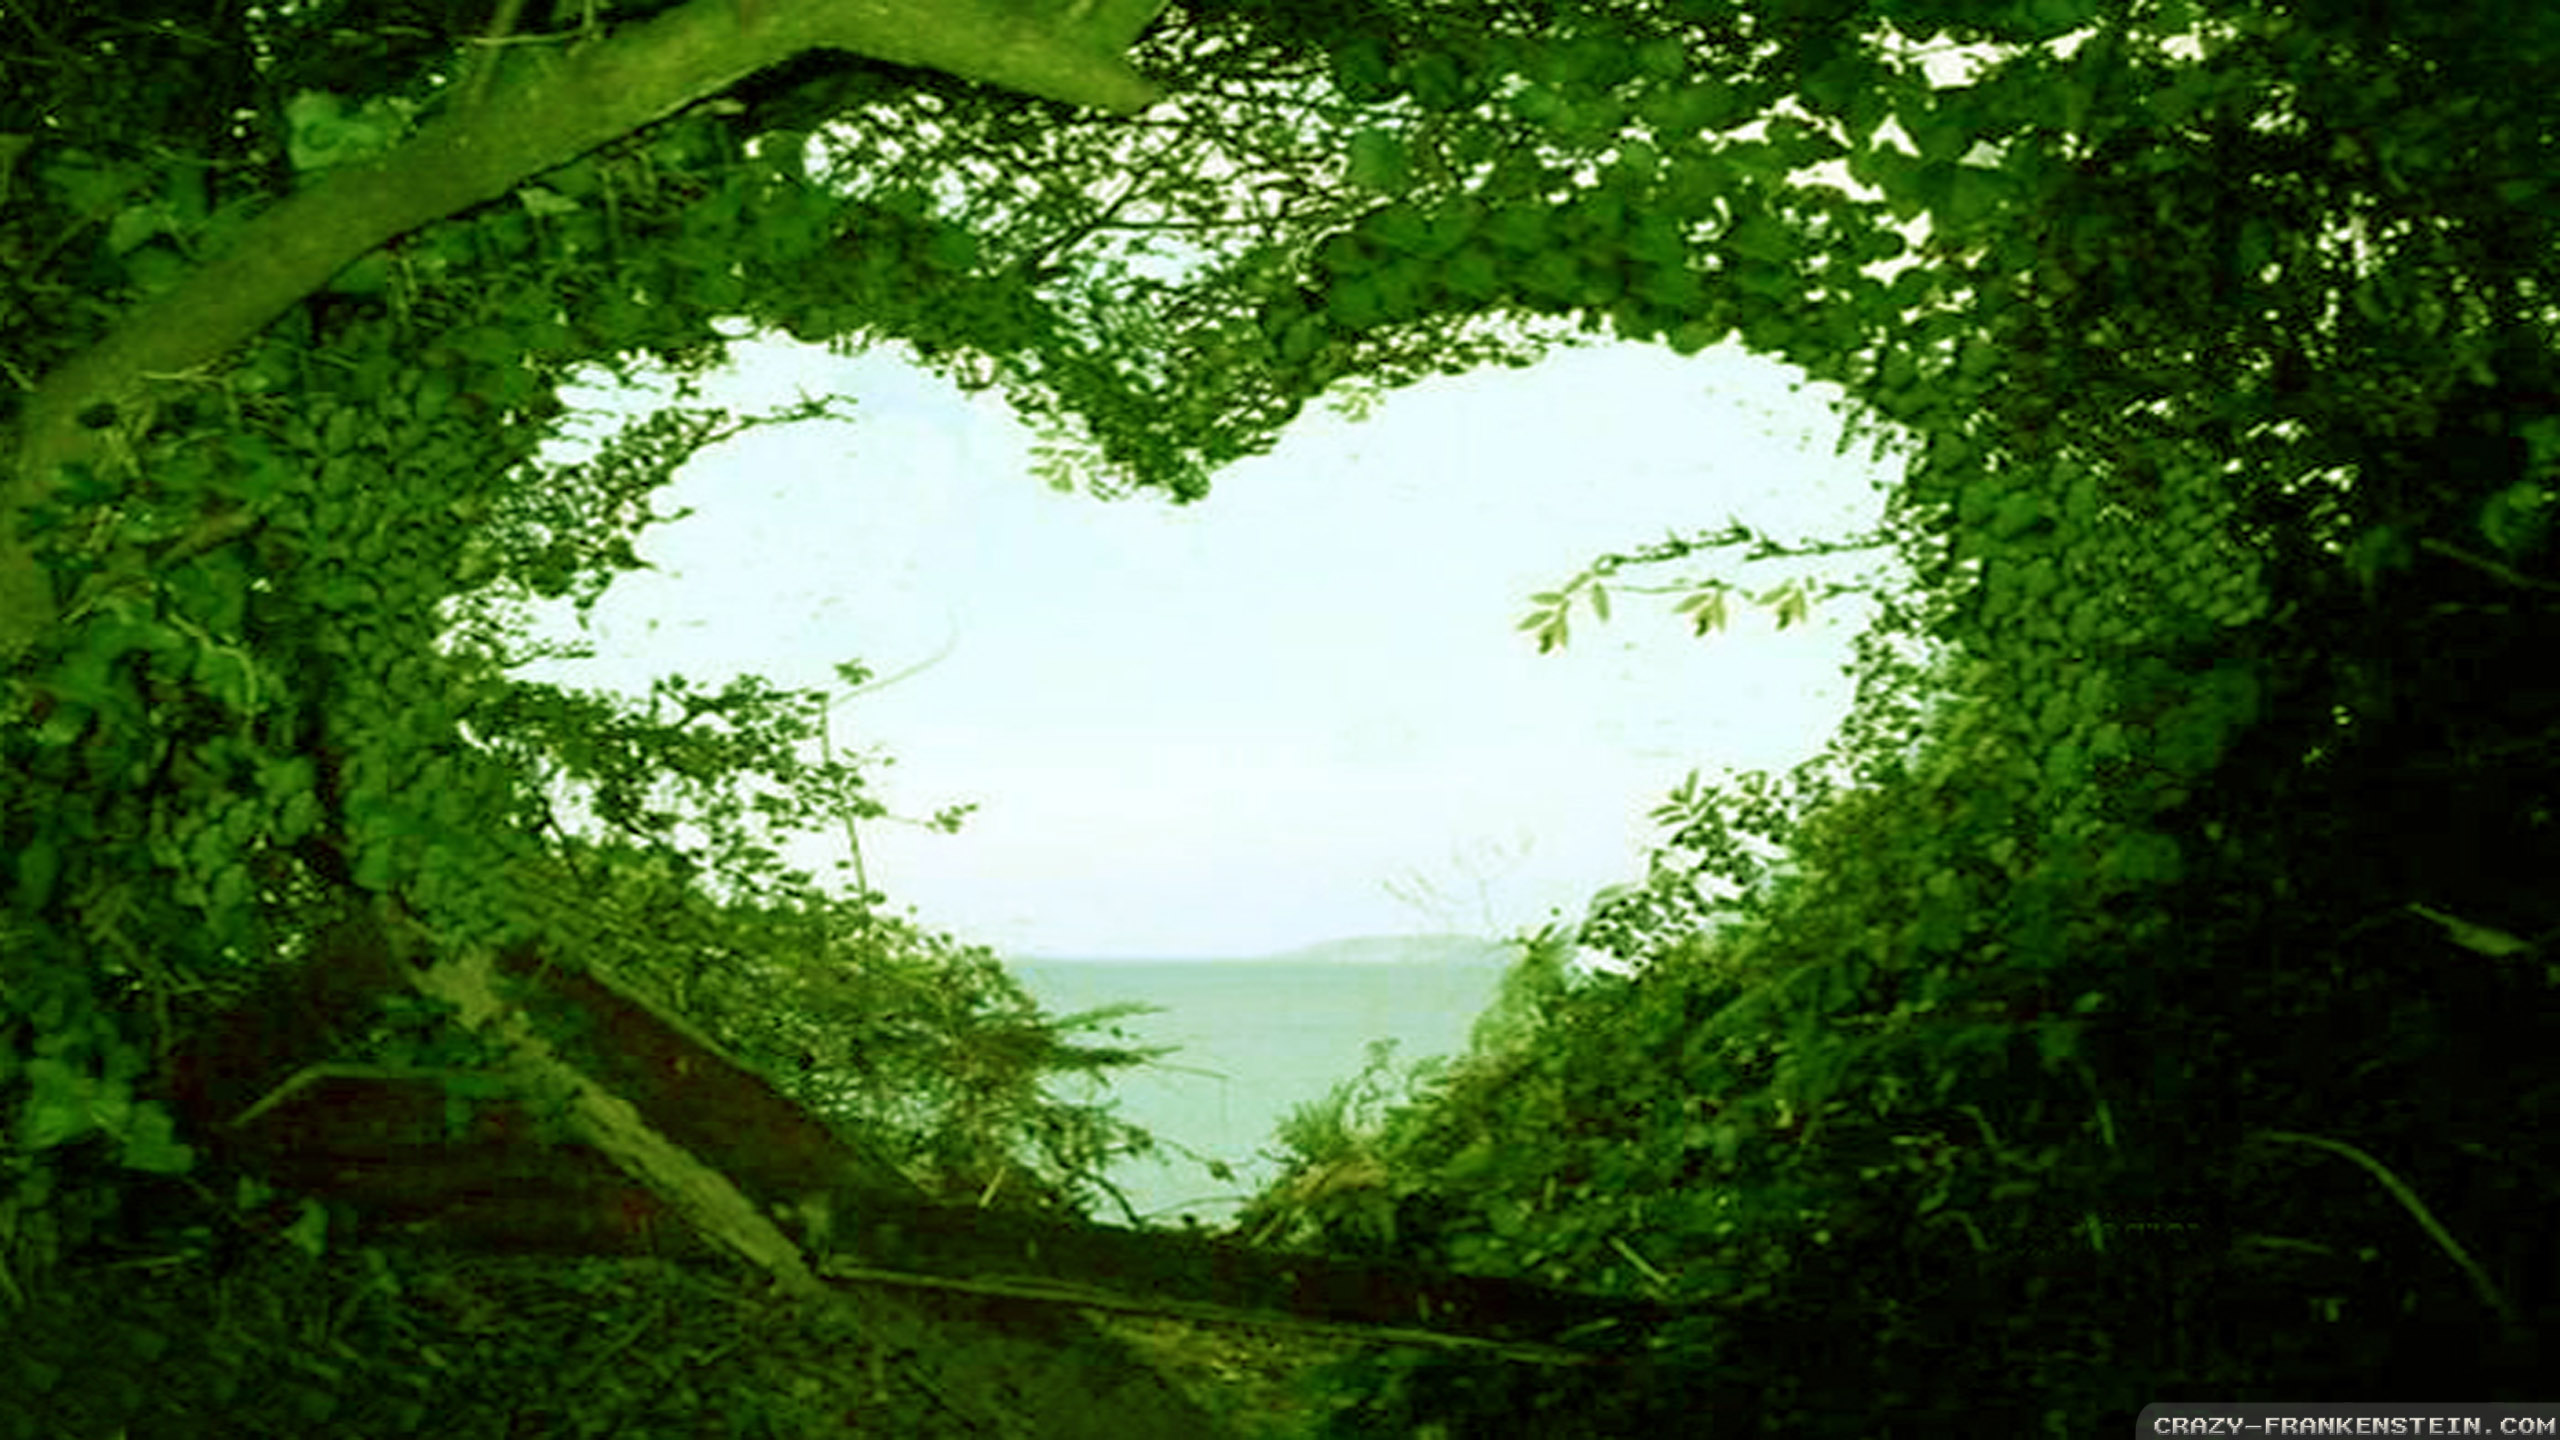 Beautiful Love Nature Wallpaper Hd Desktop Wallpapers Love Nature